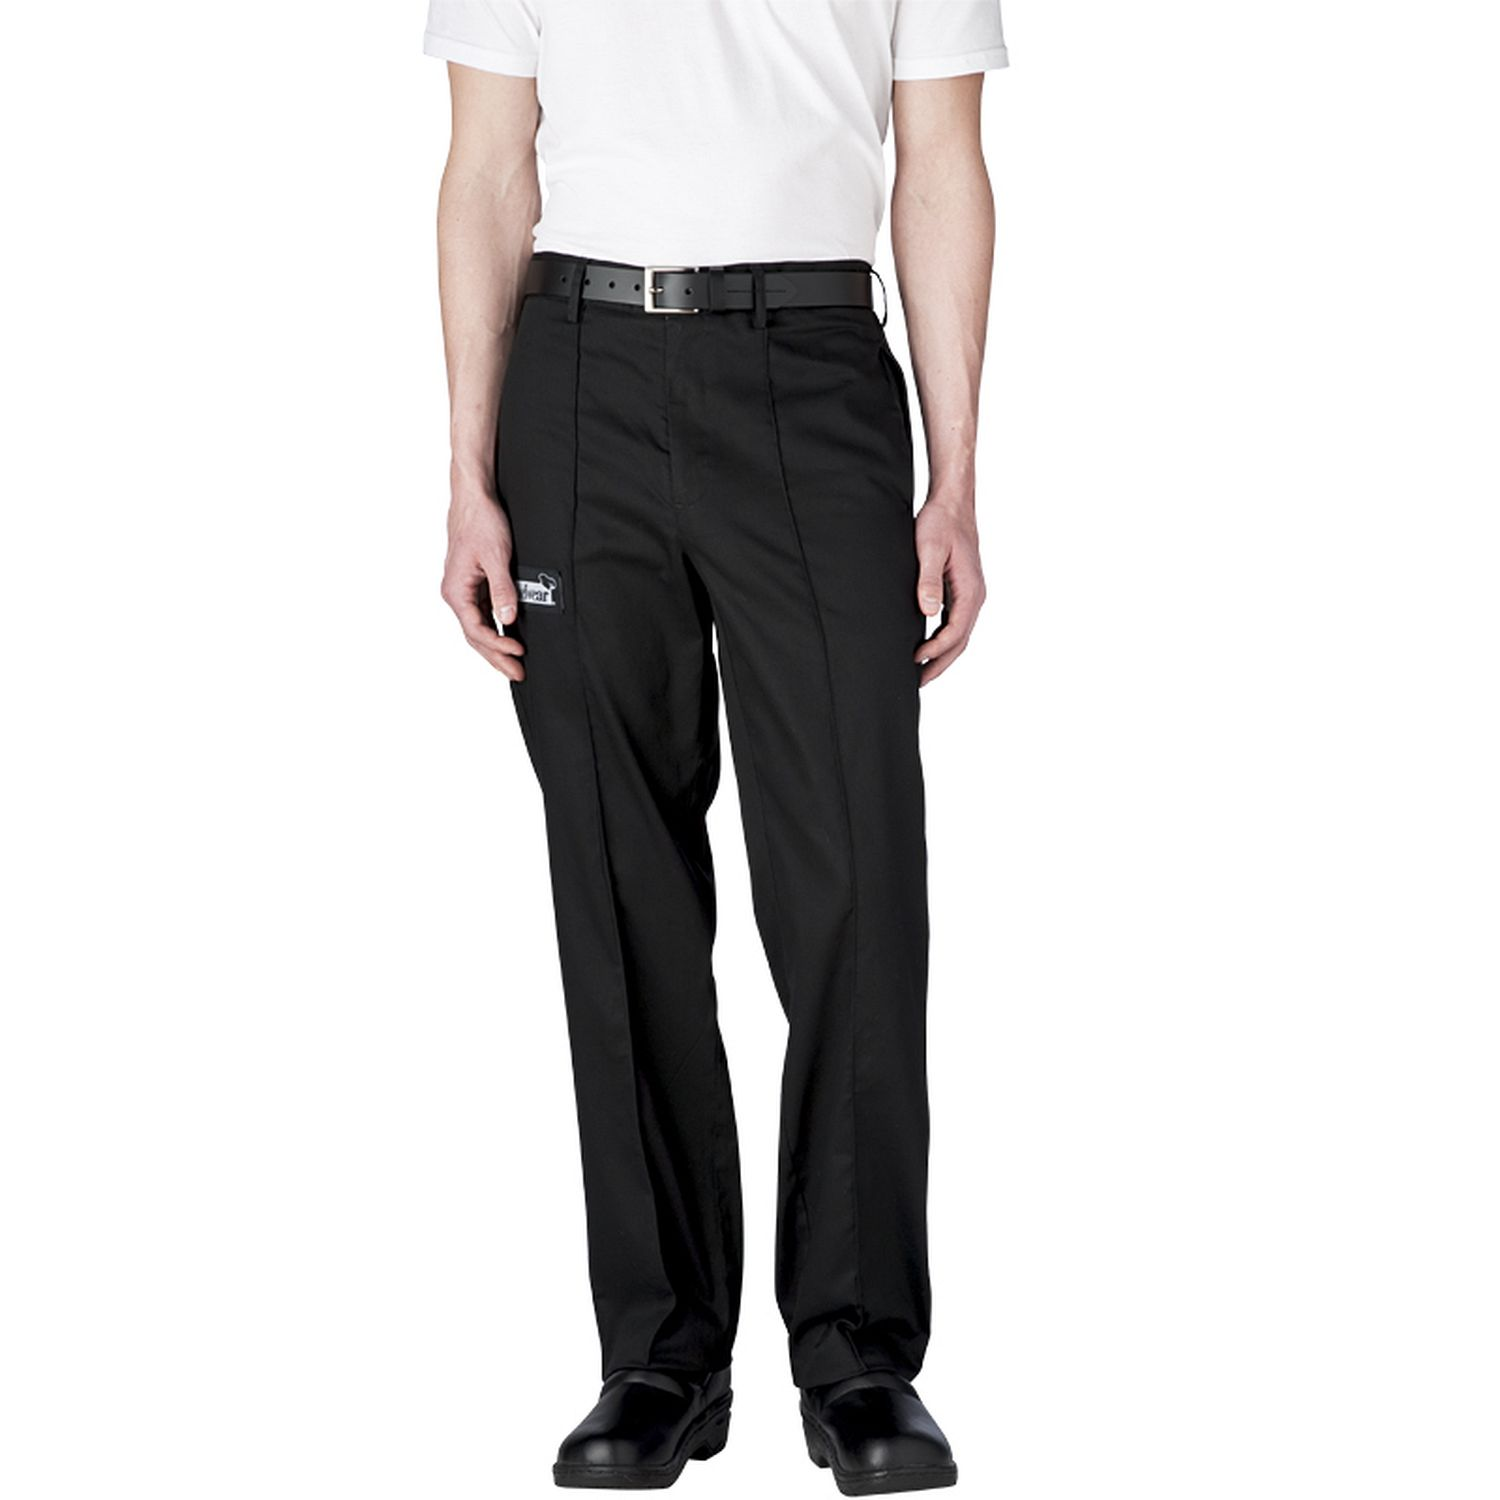 Tailored Chef Pants-Chefwear